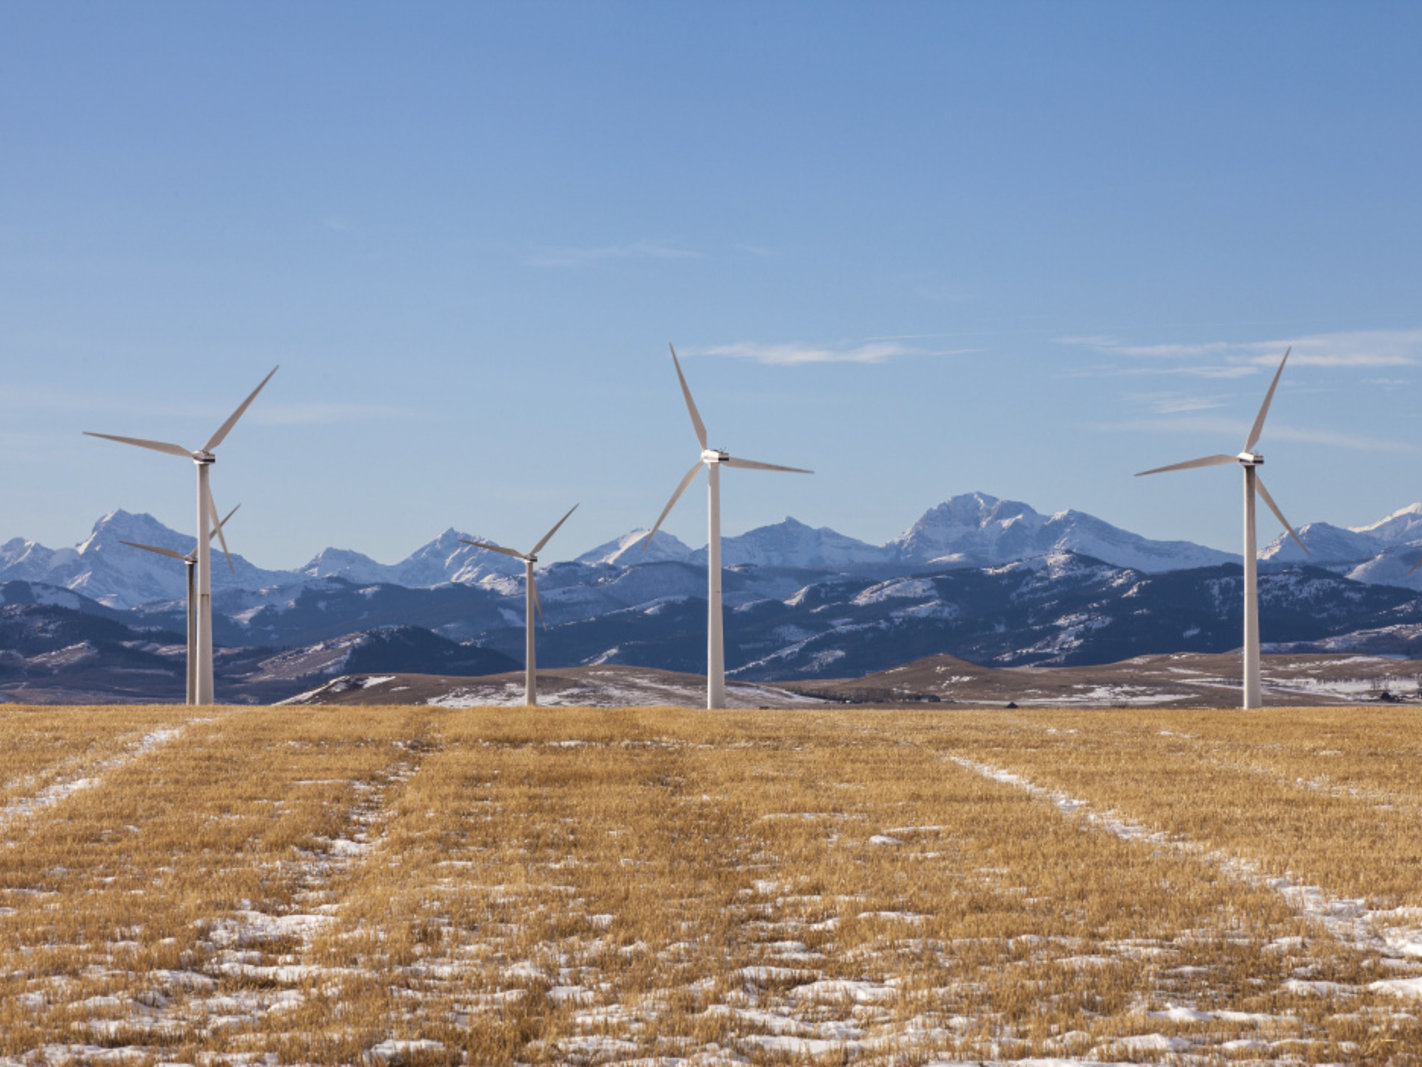 Lethbridge College wind turbines landscape panorama view